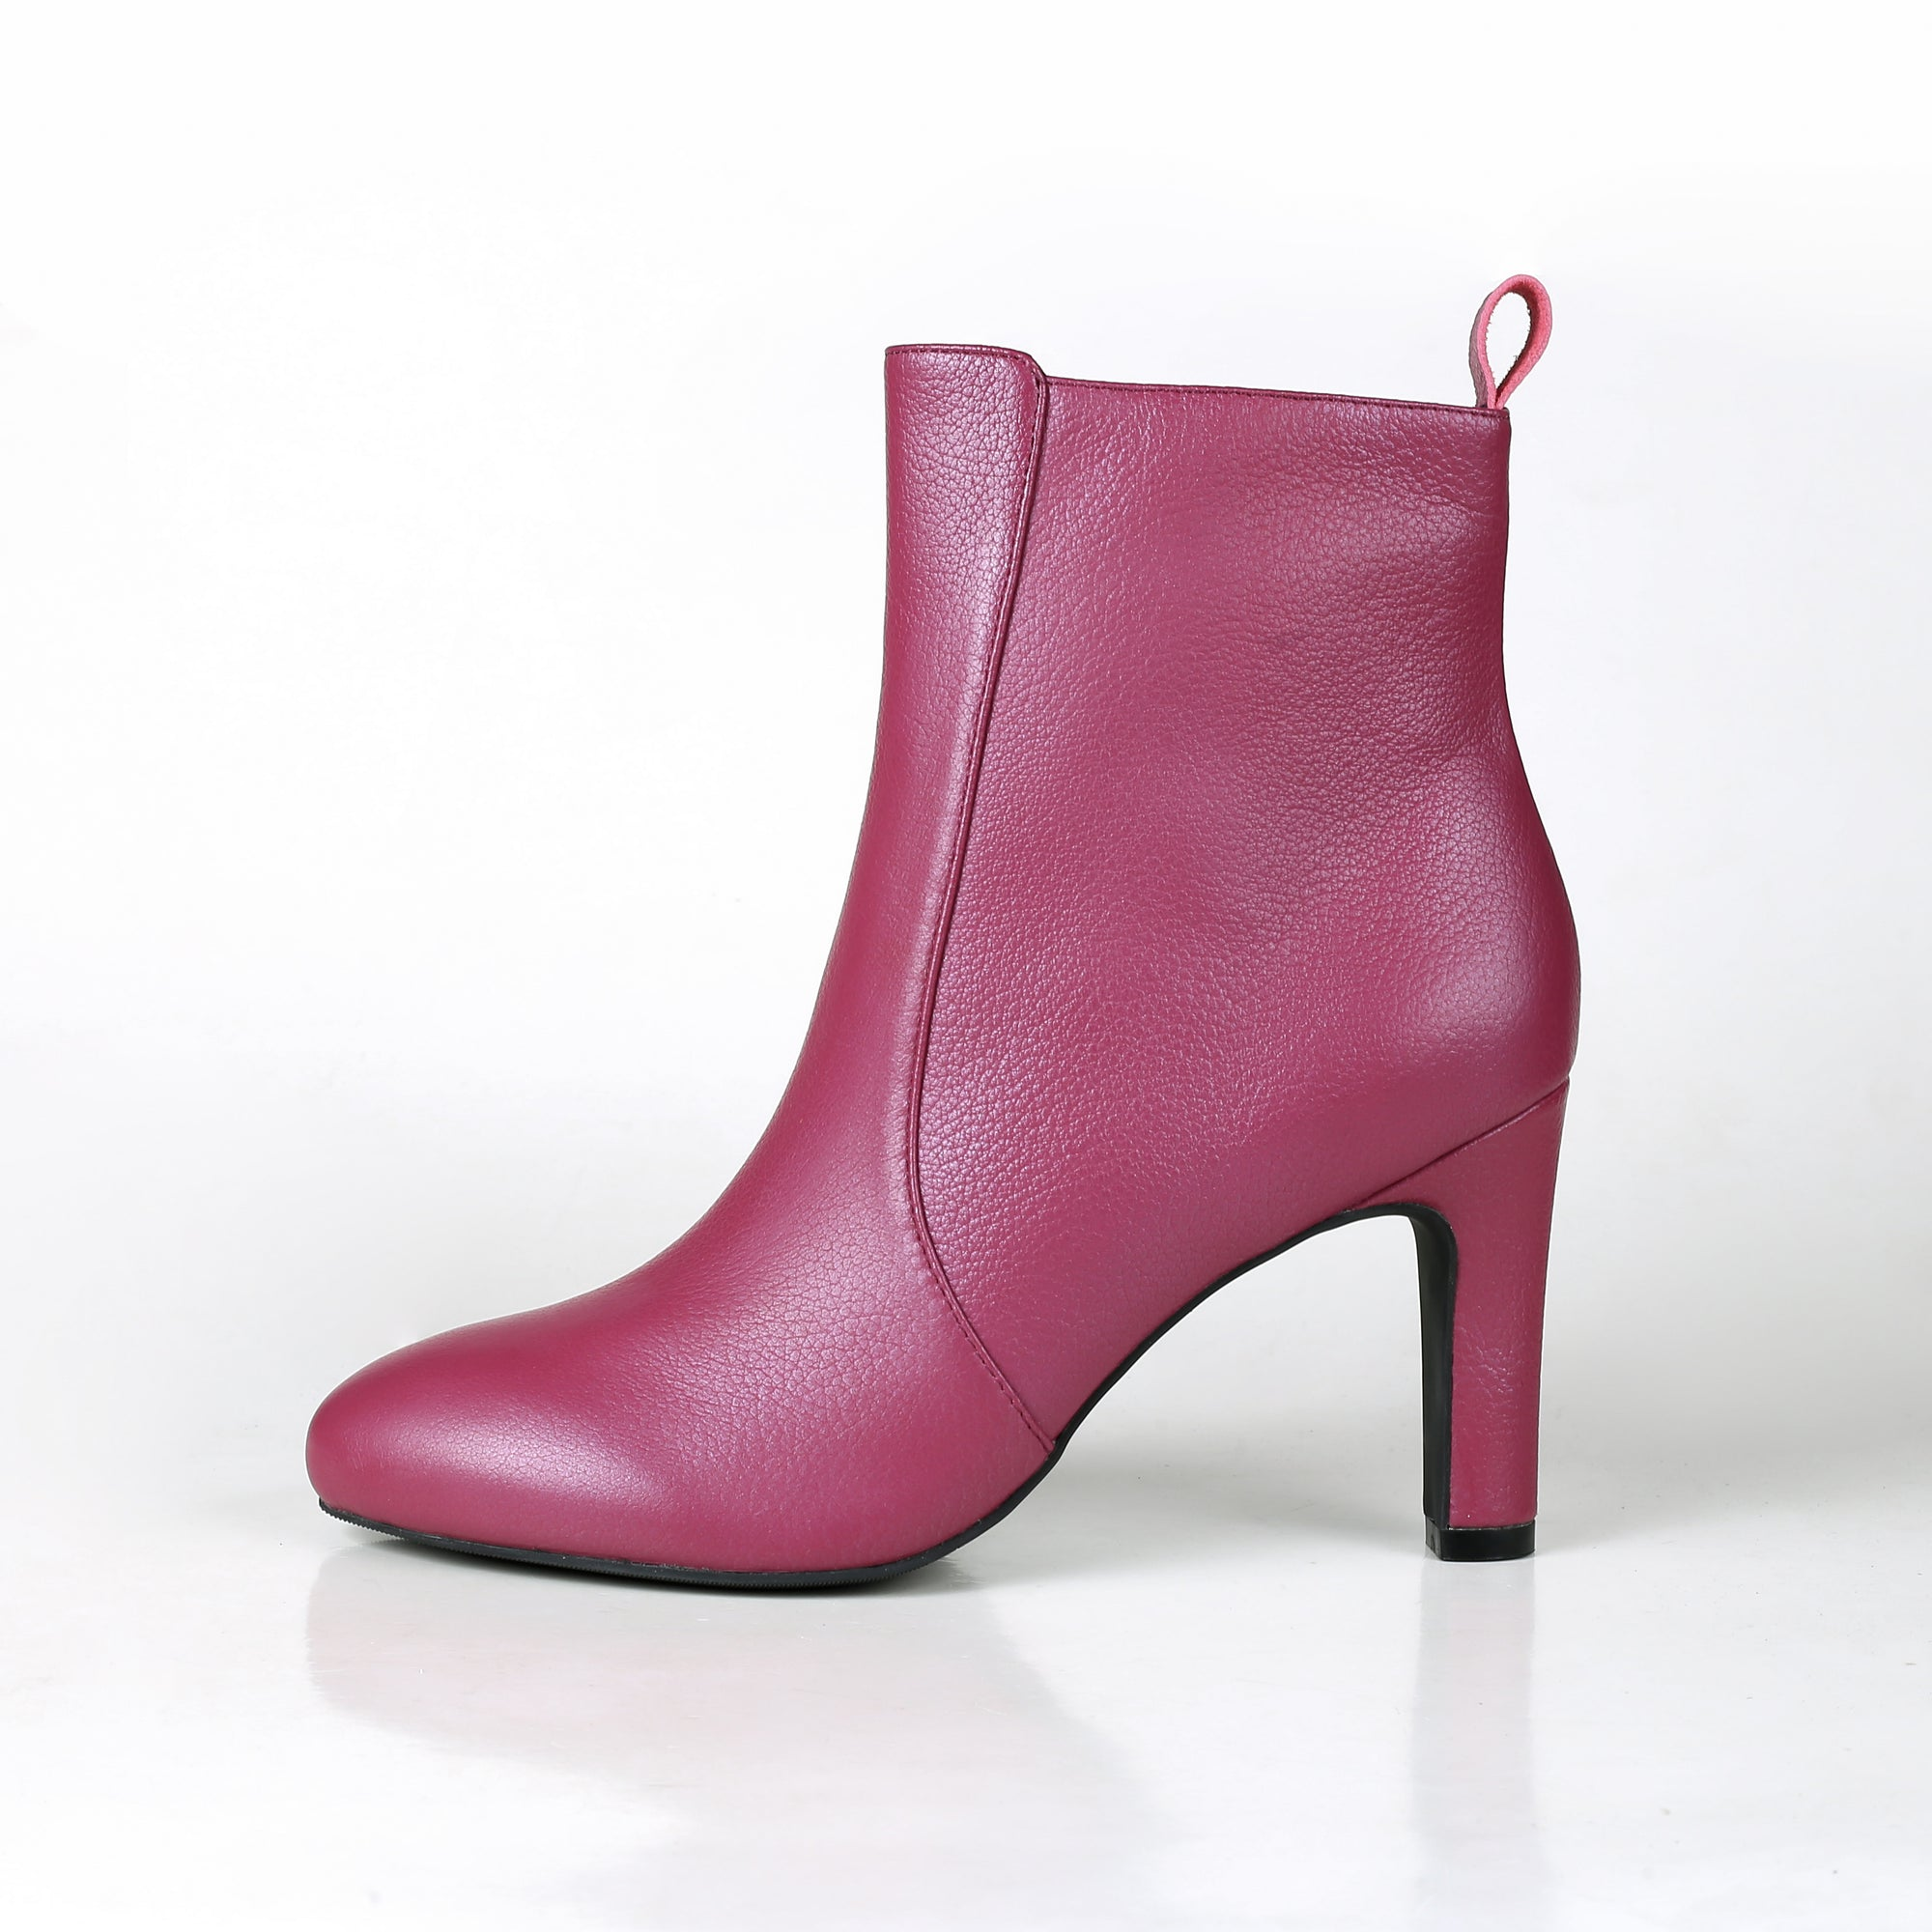 Luna Plum Leather Mid Heel Ankle Boot